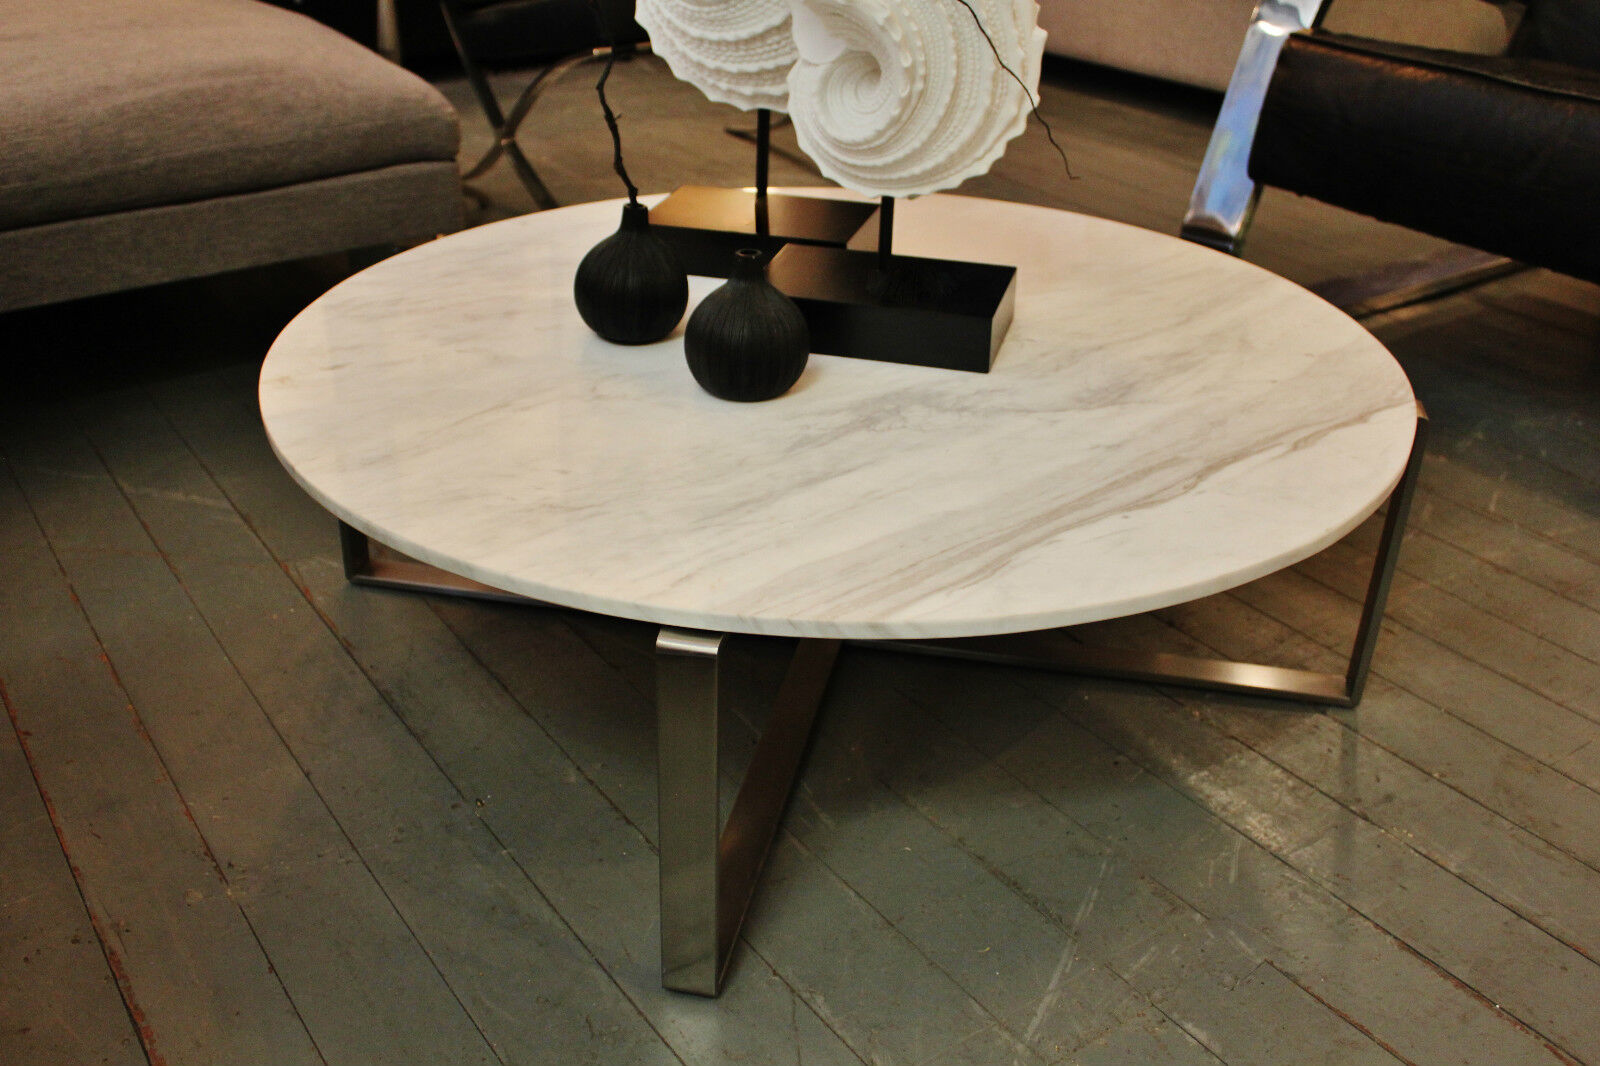 New White Marble Round Coffee Table With Brushed